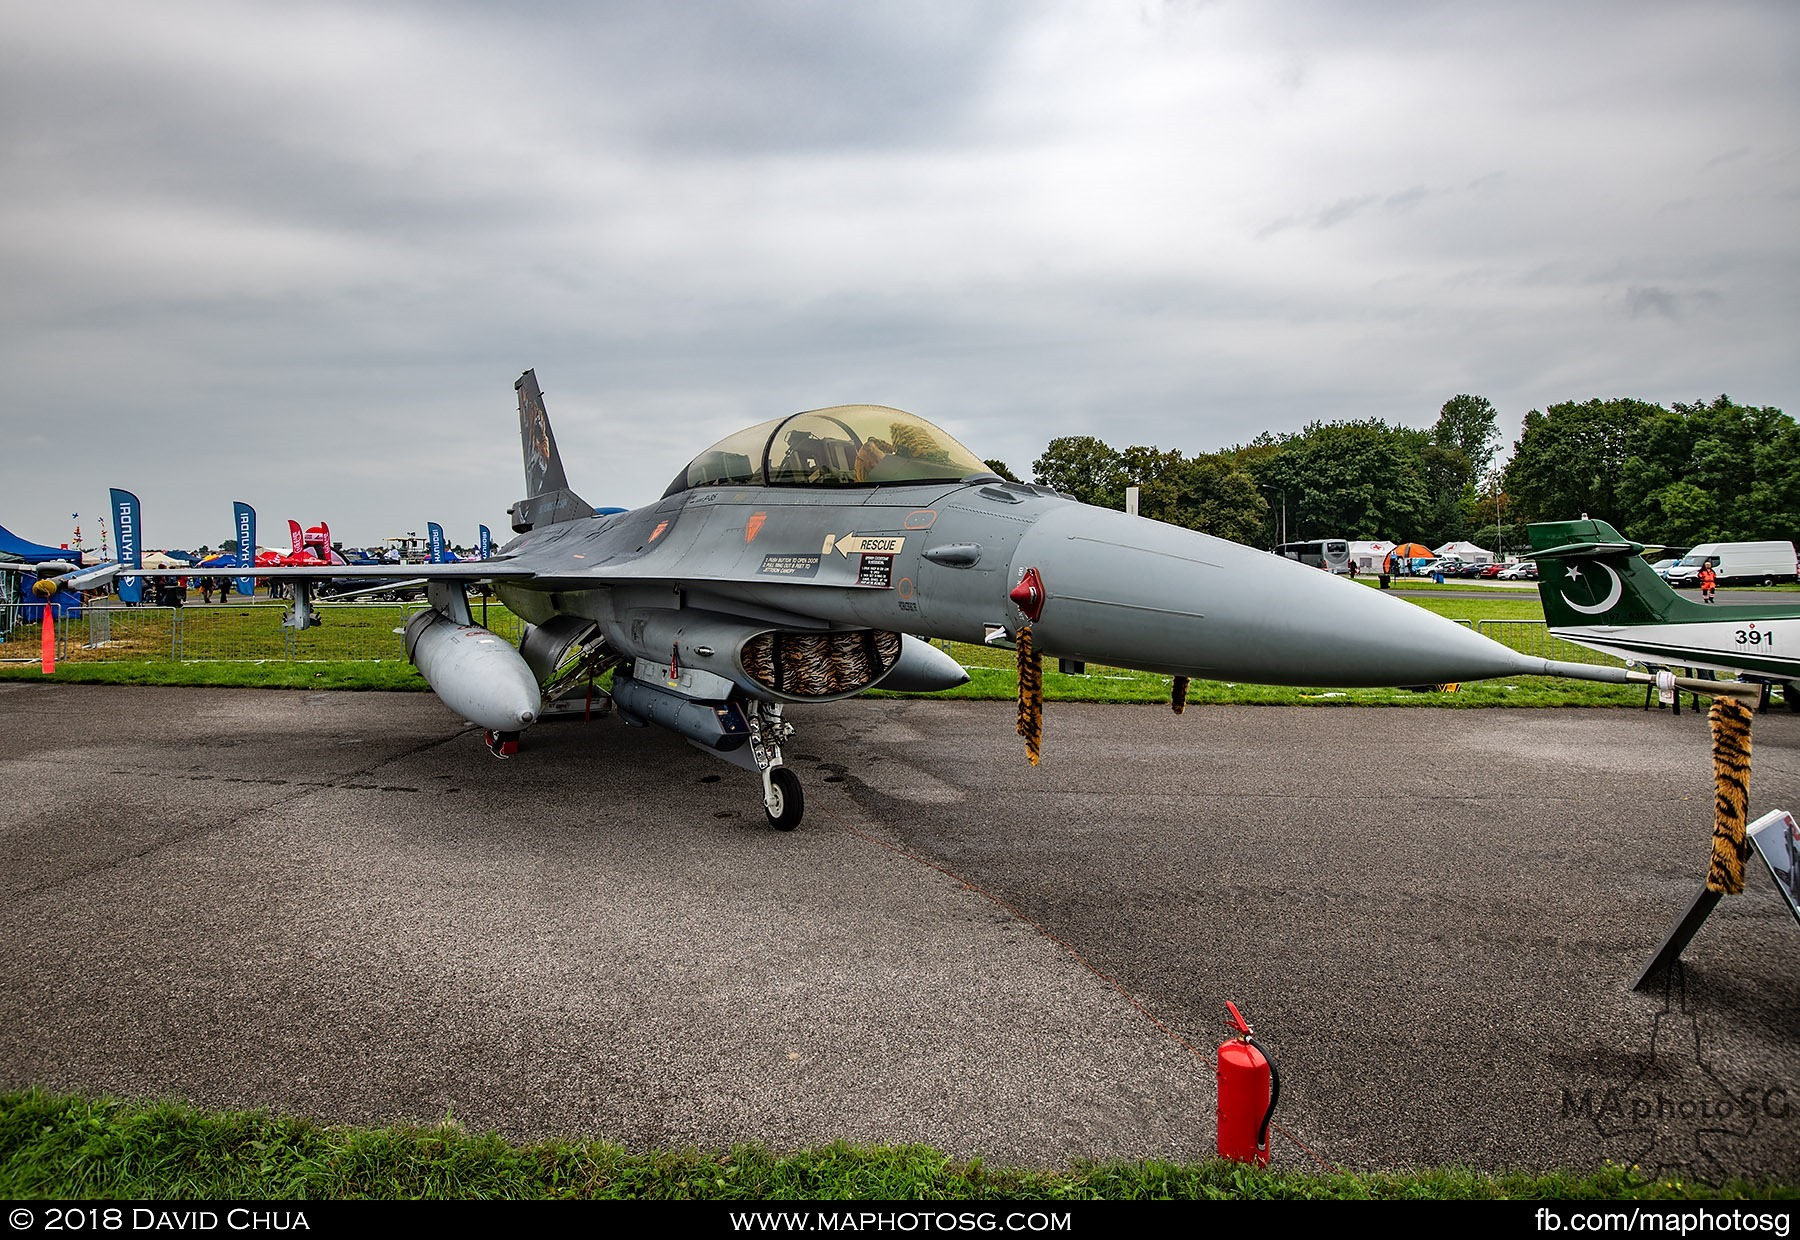 15. Royal Netherlands Air Force F-16B MLU Fighting Falcon J-882